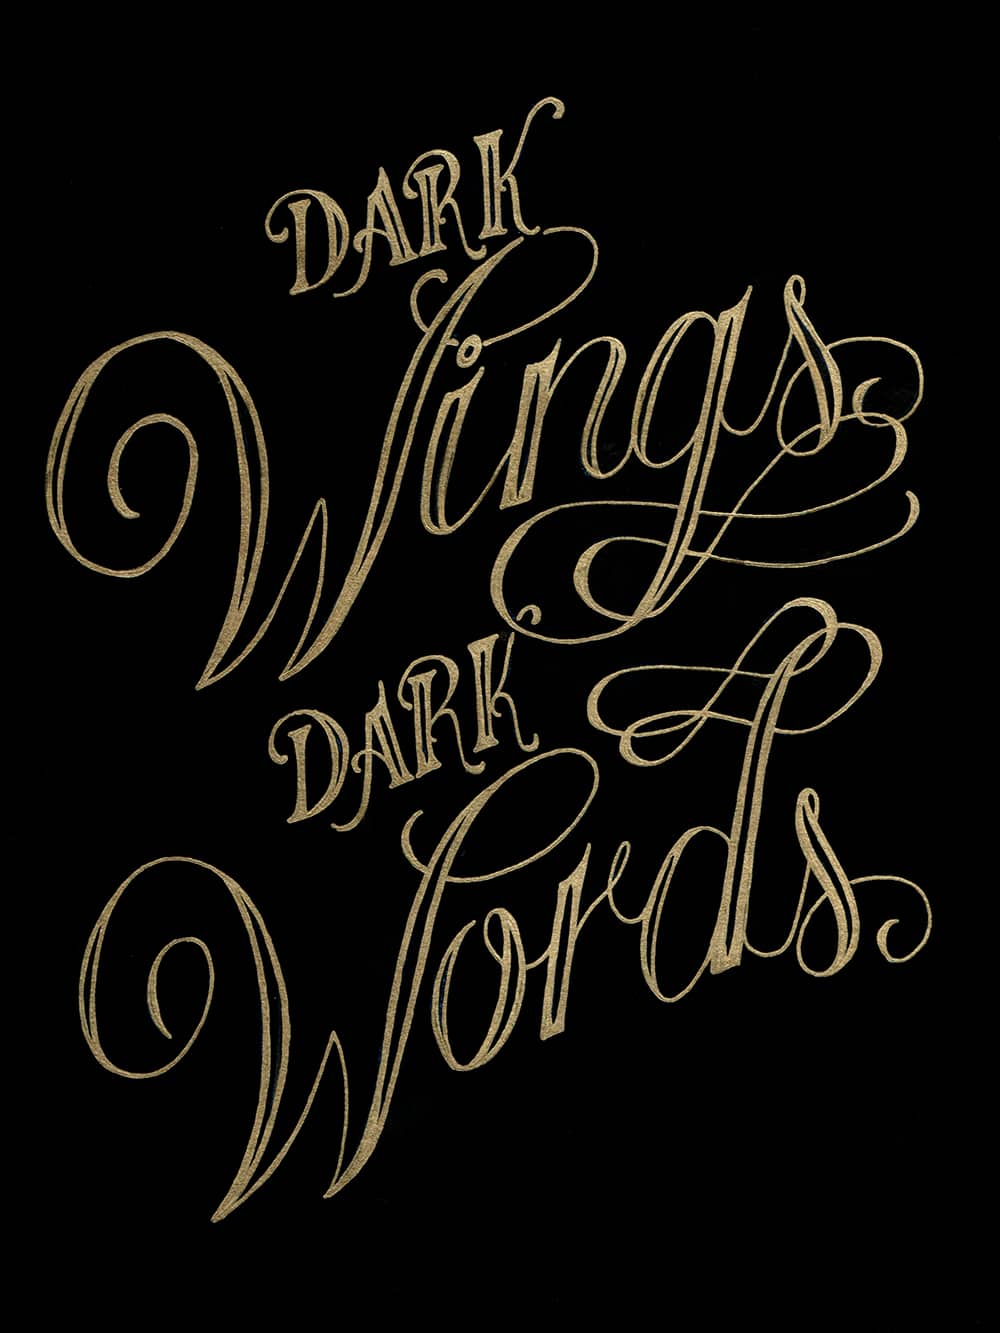 game of thrones quotes - dark wings dark words